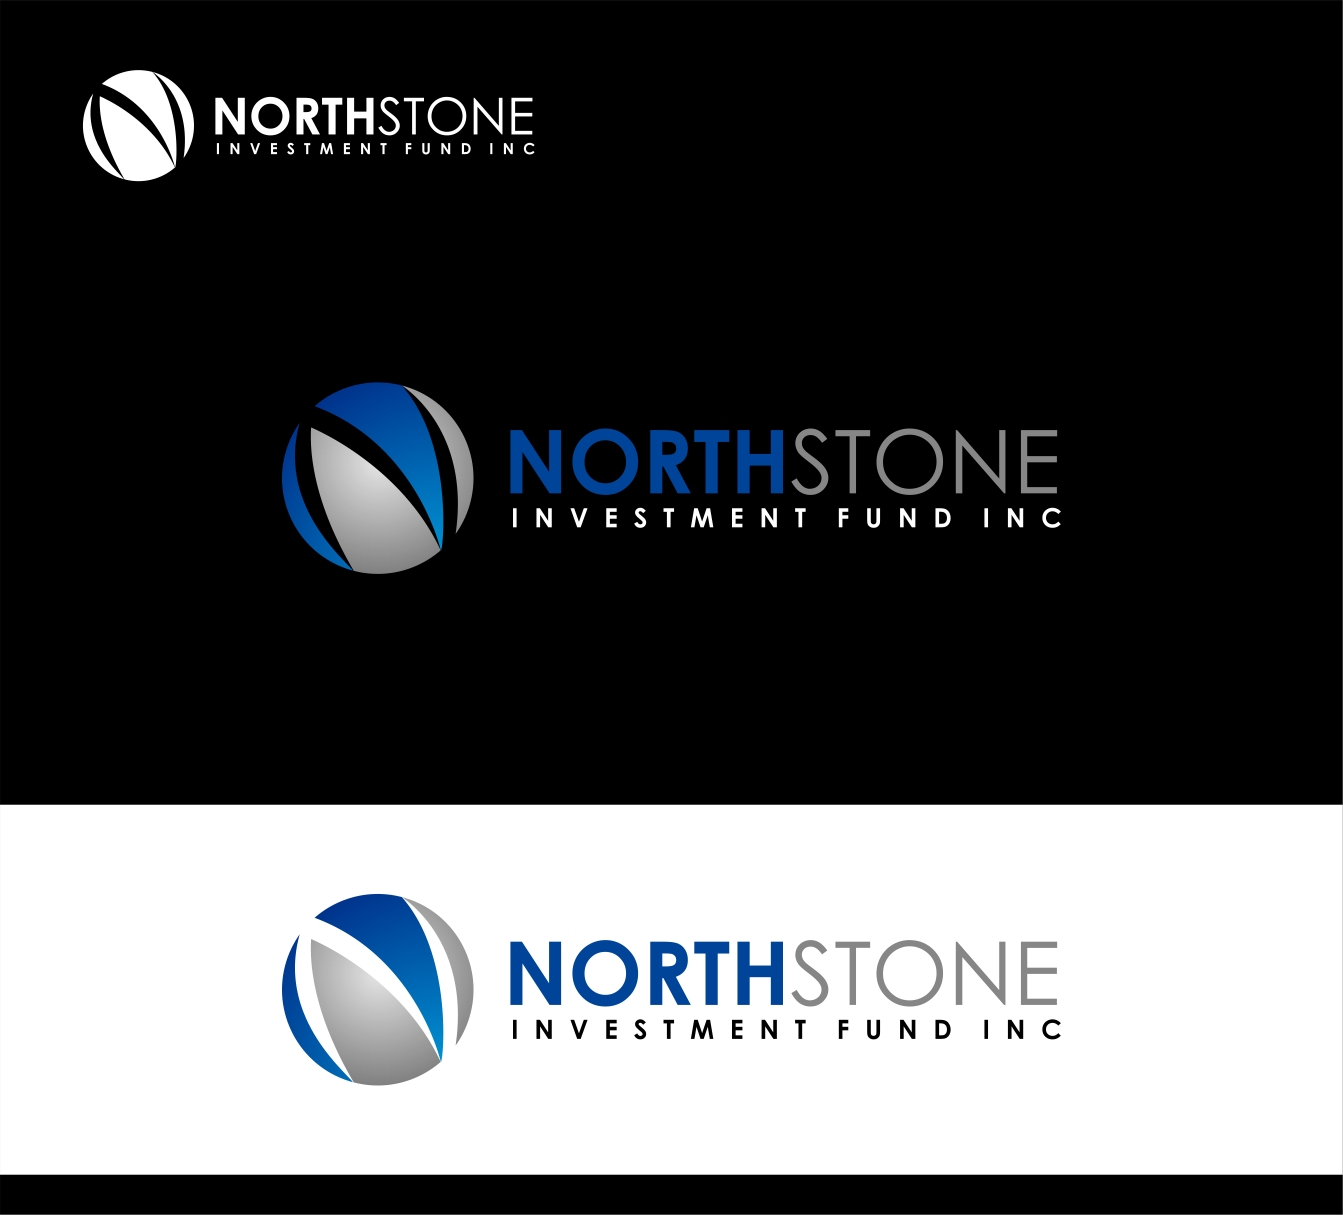 Logo Design by haidu - Entry No. 216 in the Logo Design Contest Unique Logo Design Wanted for NorthStone Investment Fund Inc.